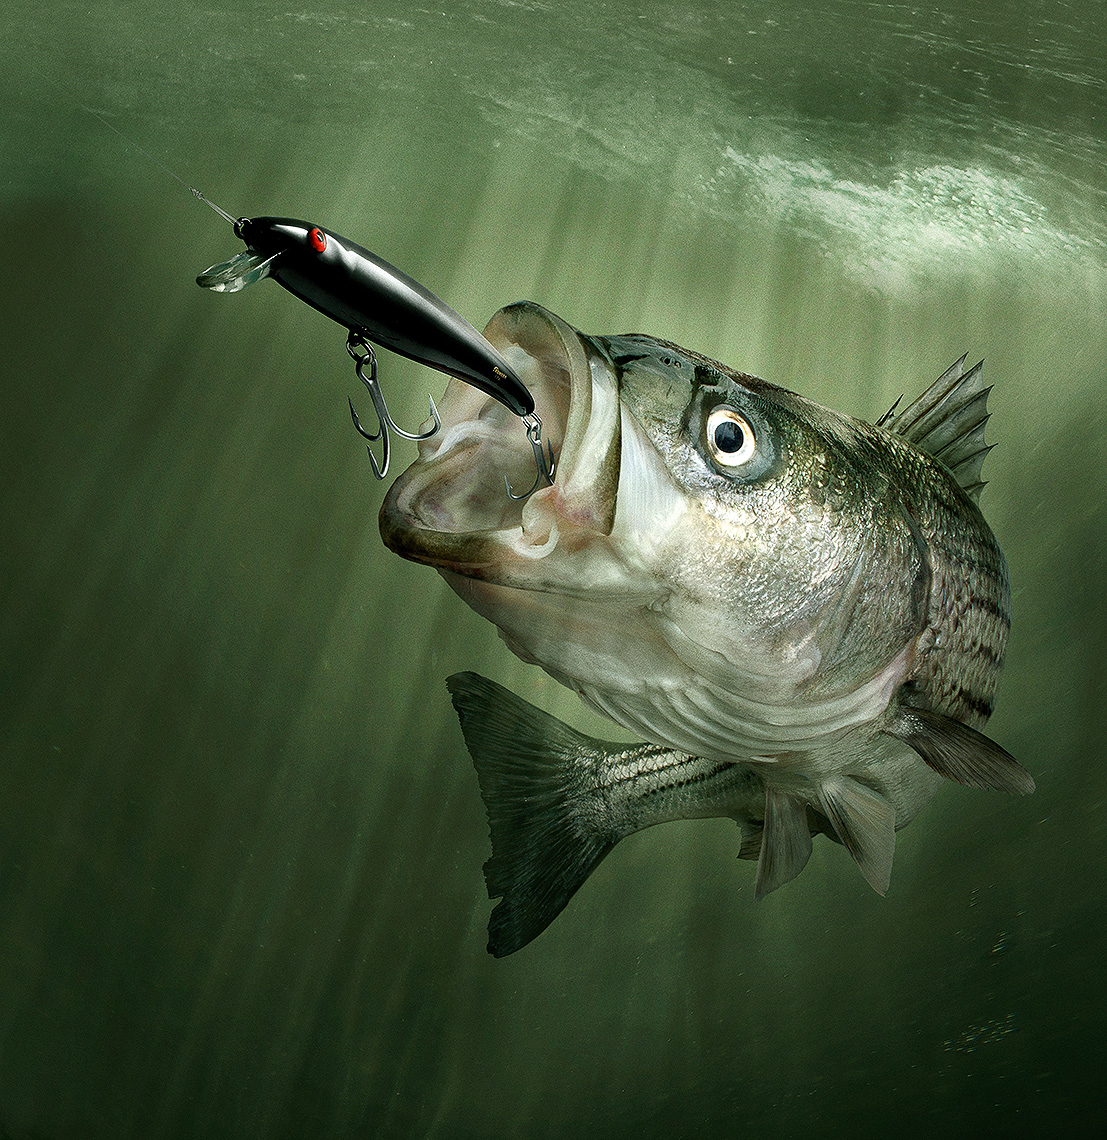 Striped bass, striper fishing with bomber lure by John Kuczala